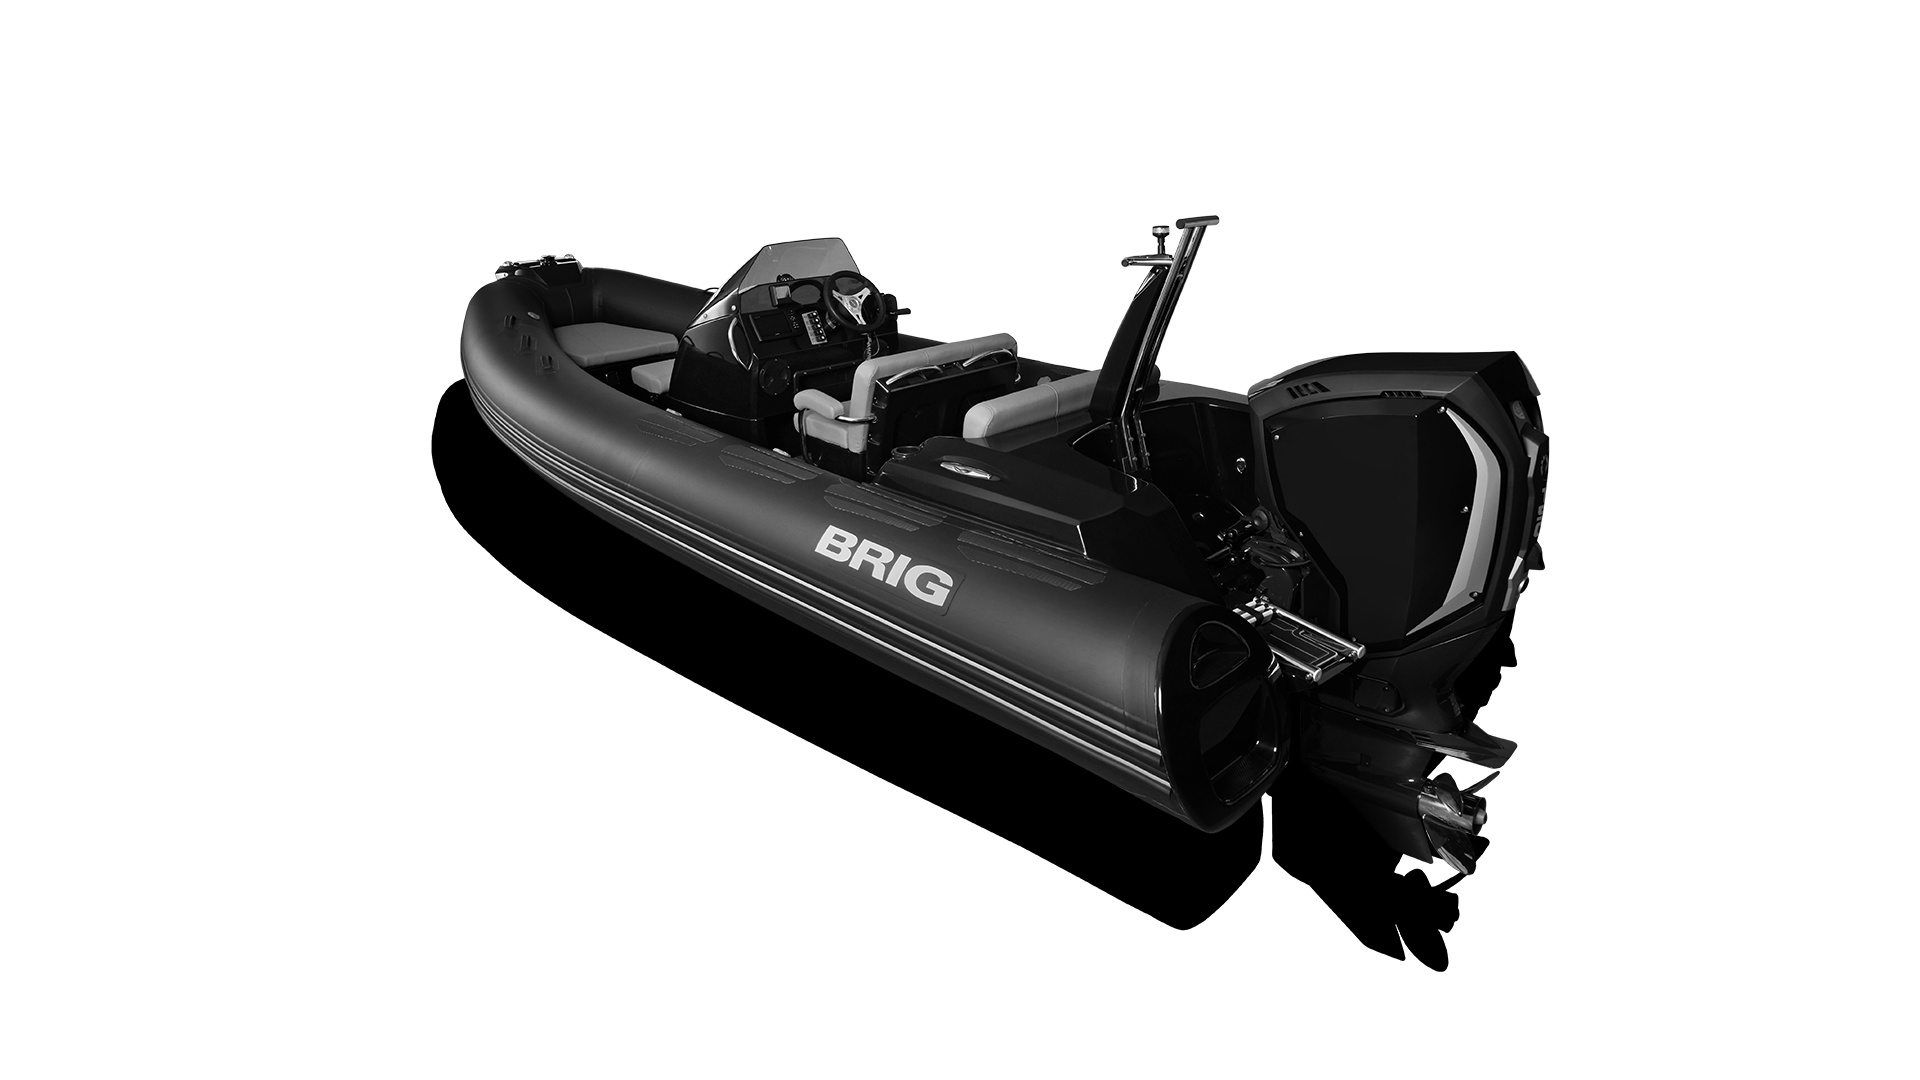 Eagle 580 Rigid Inflatable Boat